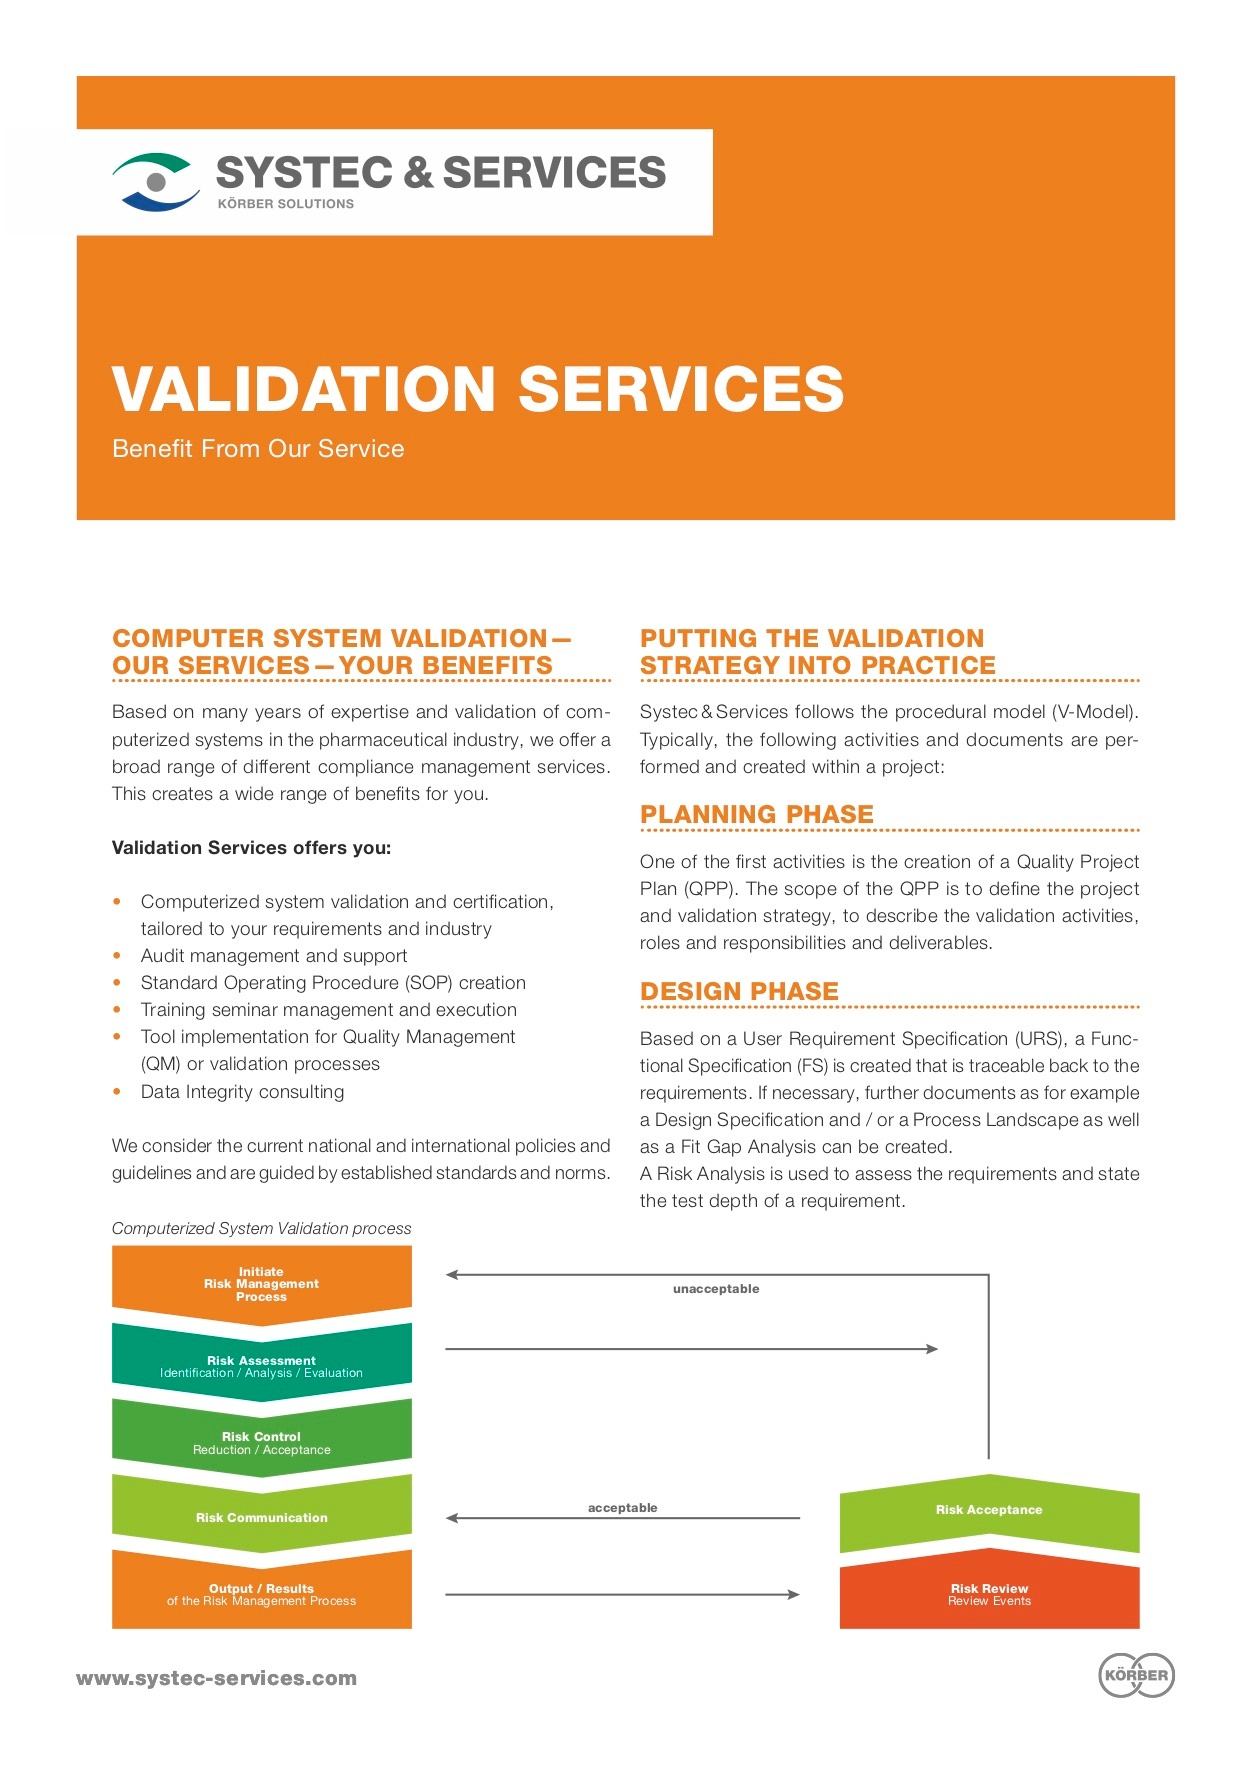 Systec-Services_QMS_Validation_Services_20180625_EN